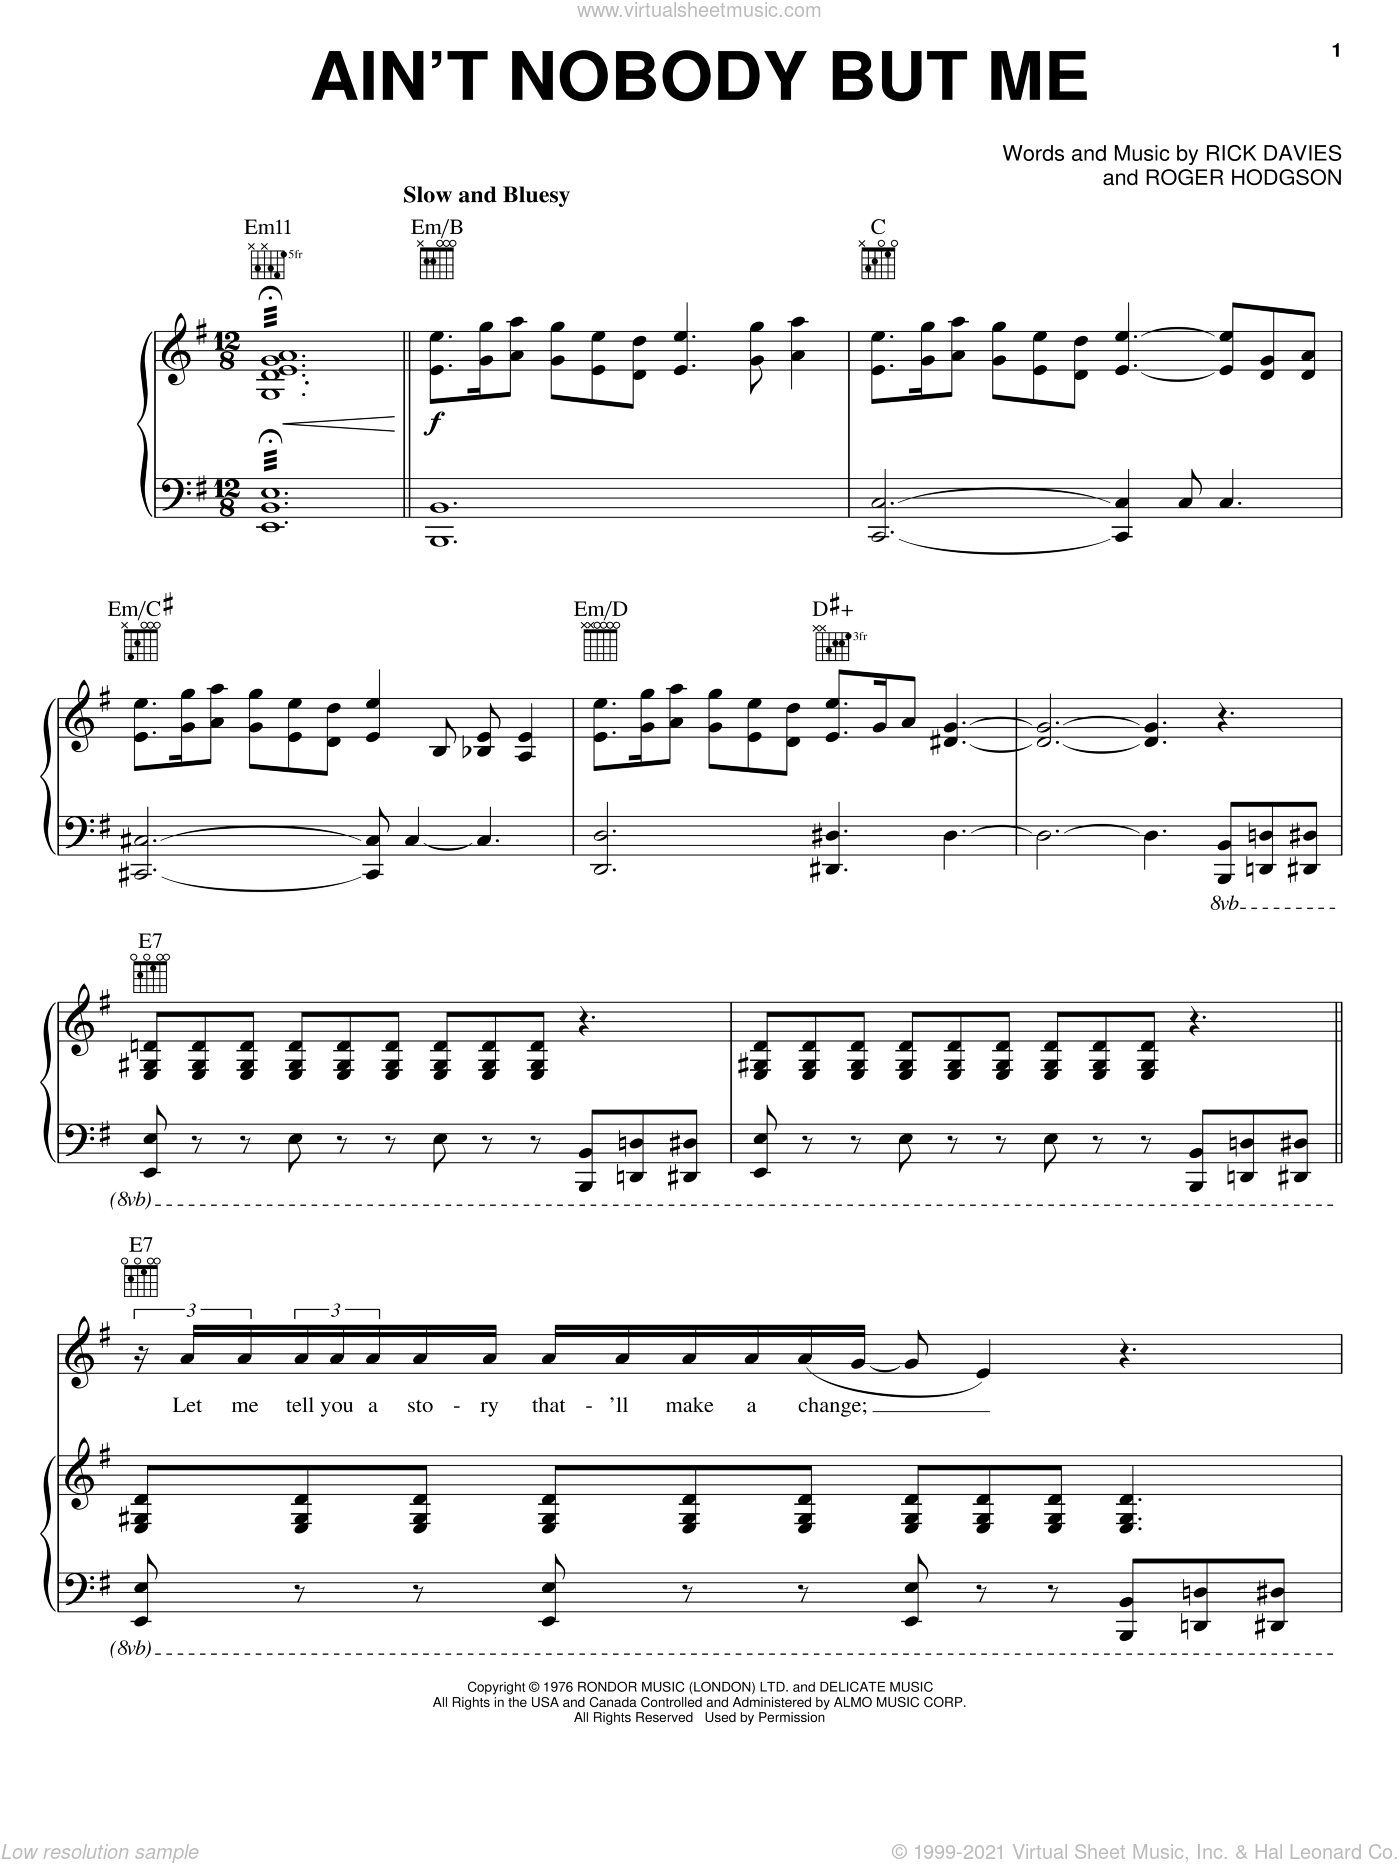 Ain't Nobody But Me sheet music for voice, piano or guitar by Roger Hodgson, Supertramp and Rick Davies. Score Image Preview.